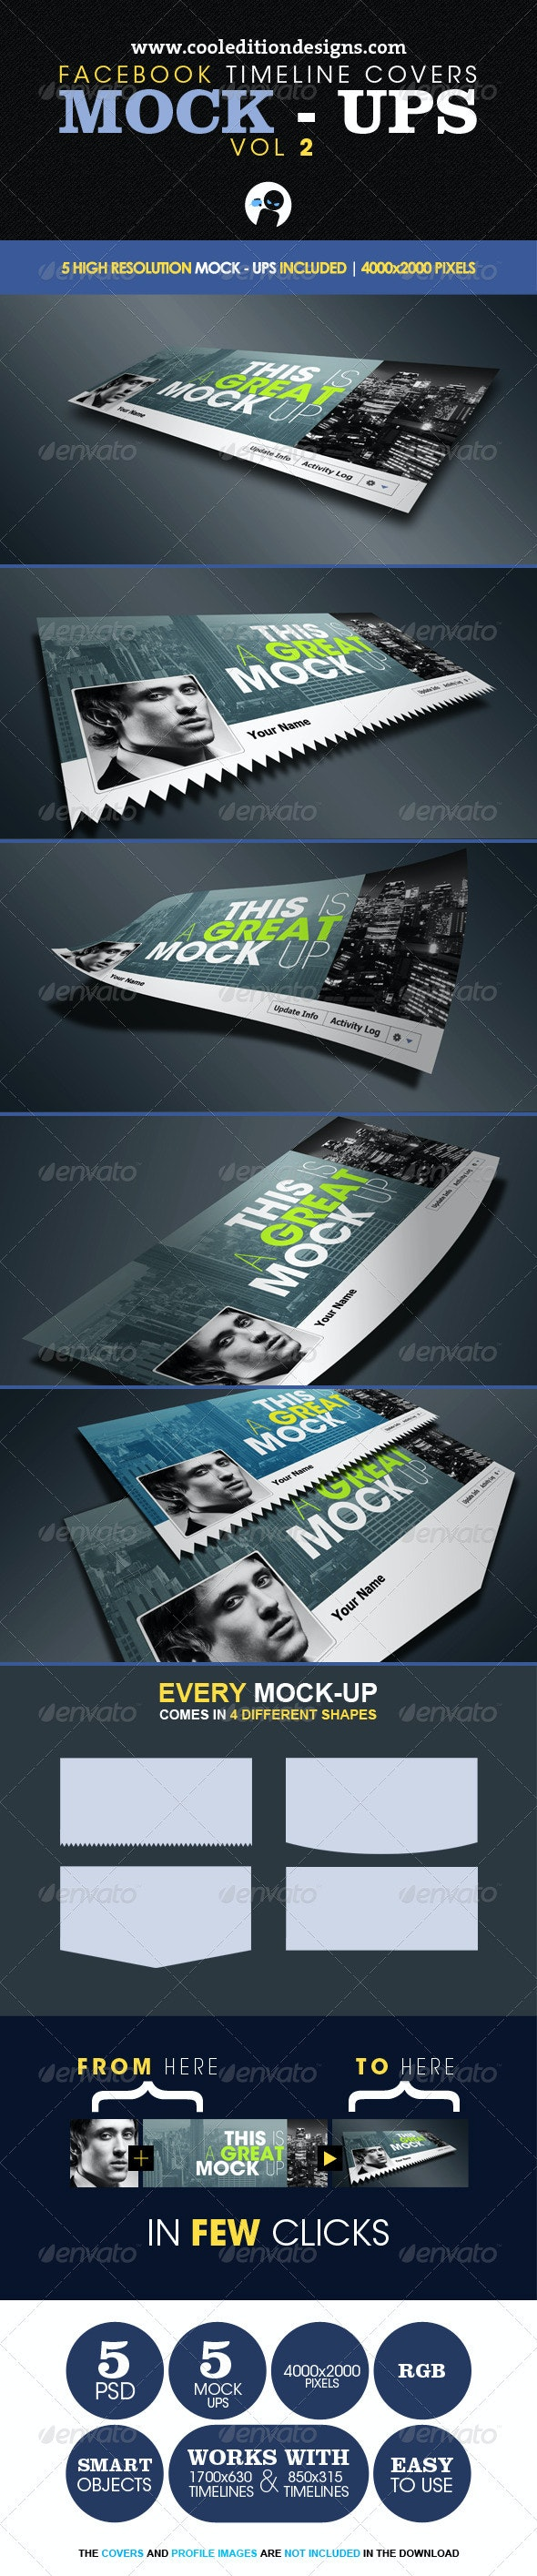 Facebook Timeline Covers Mock-Ups VOL2 - Miscellaneous Graphics